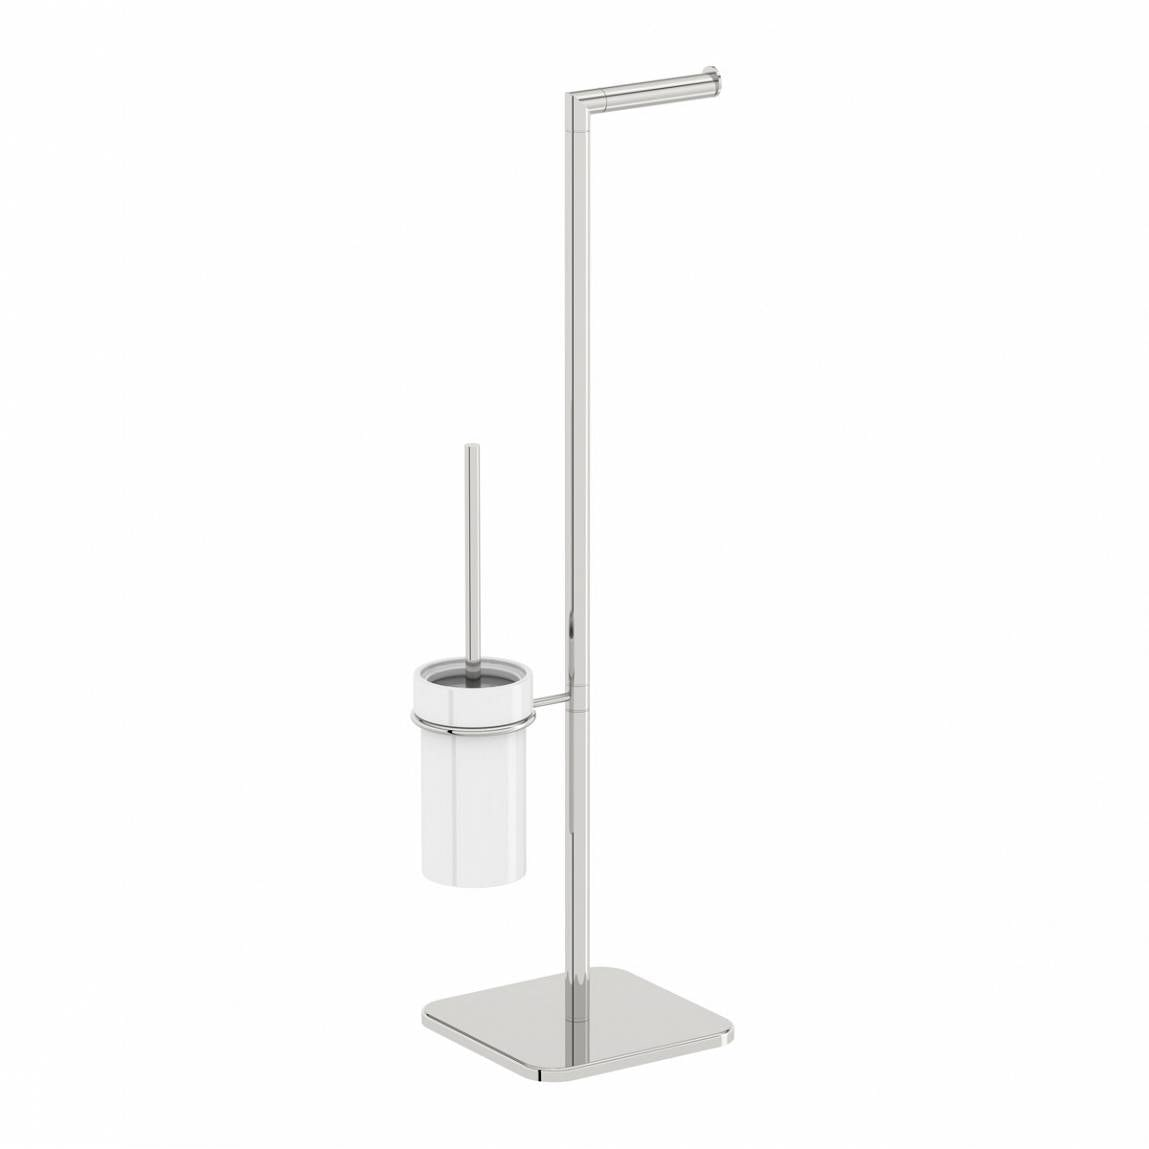 Orchard Options round freestanding ceramic bathroom butler